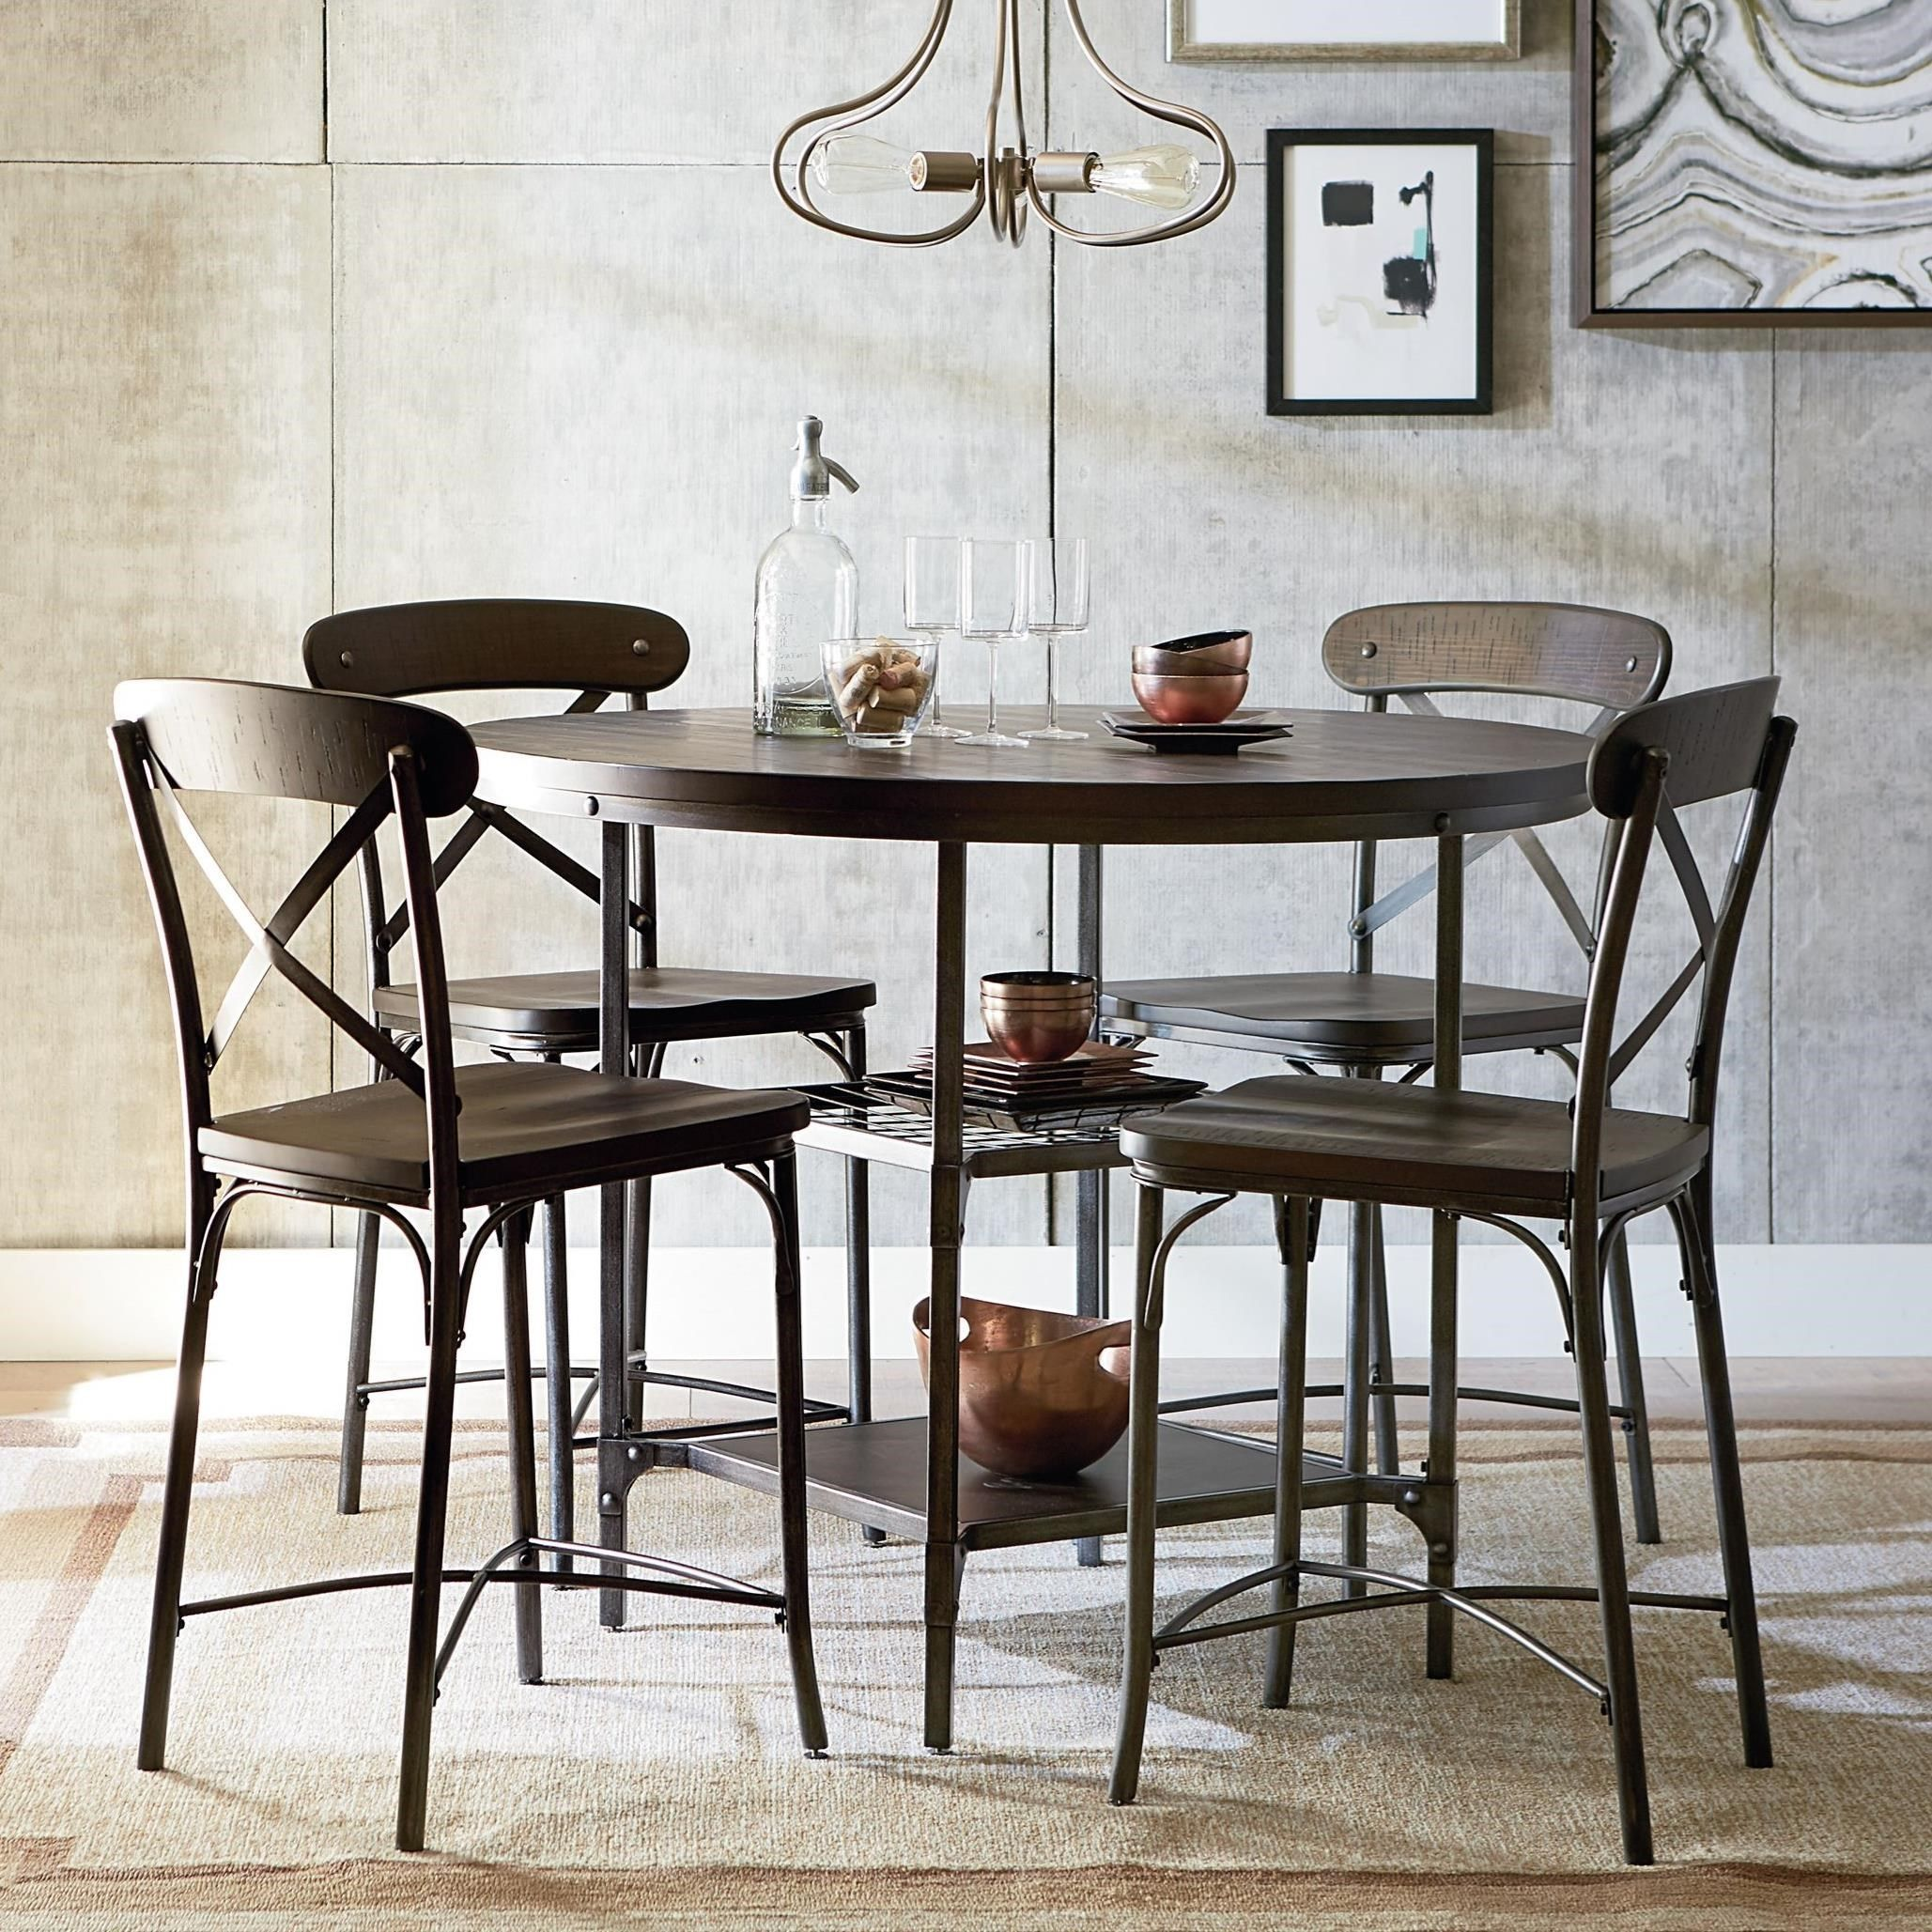 Montvale Bar Height Dining Set By Standard Furniture Pub Table And Chairs Pub Height Table Pub Table